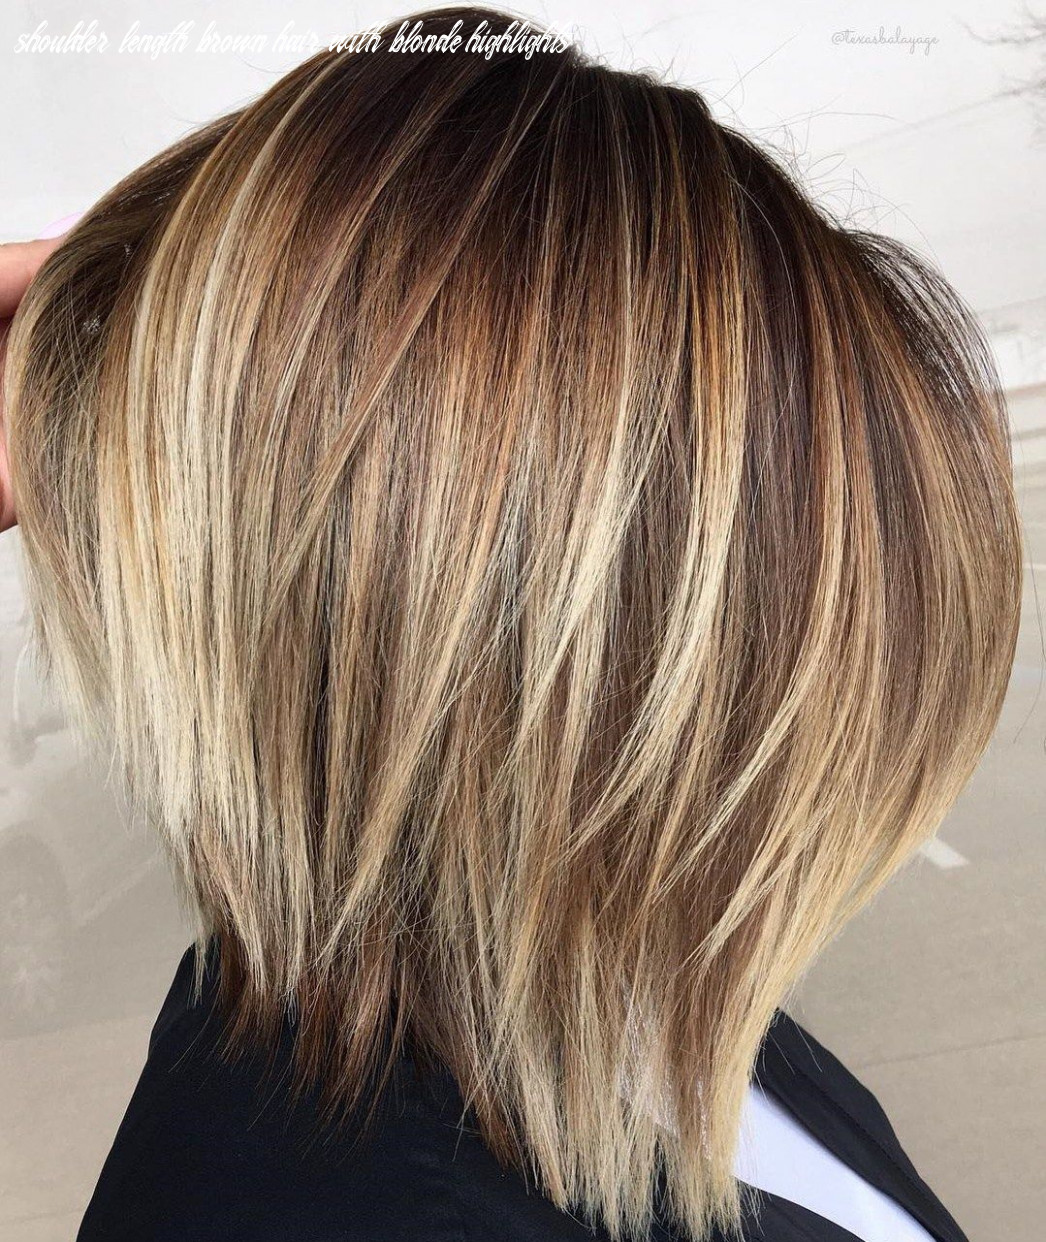 10 brightest medium layered haircuts to light you up (with images